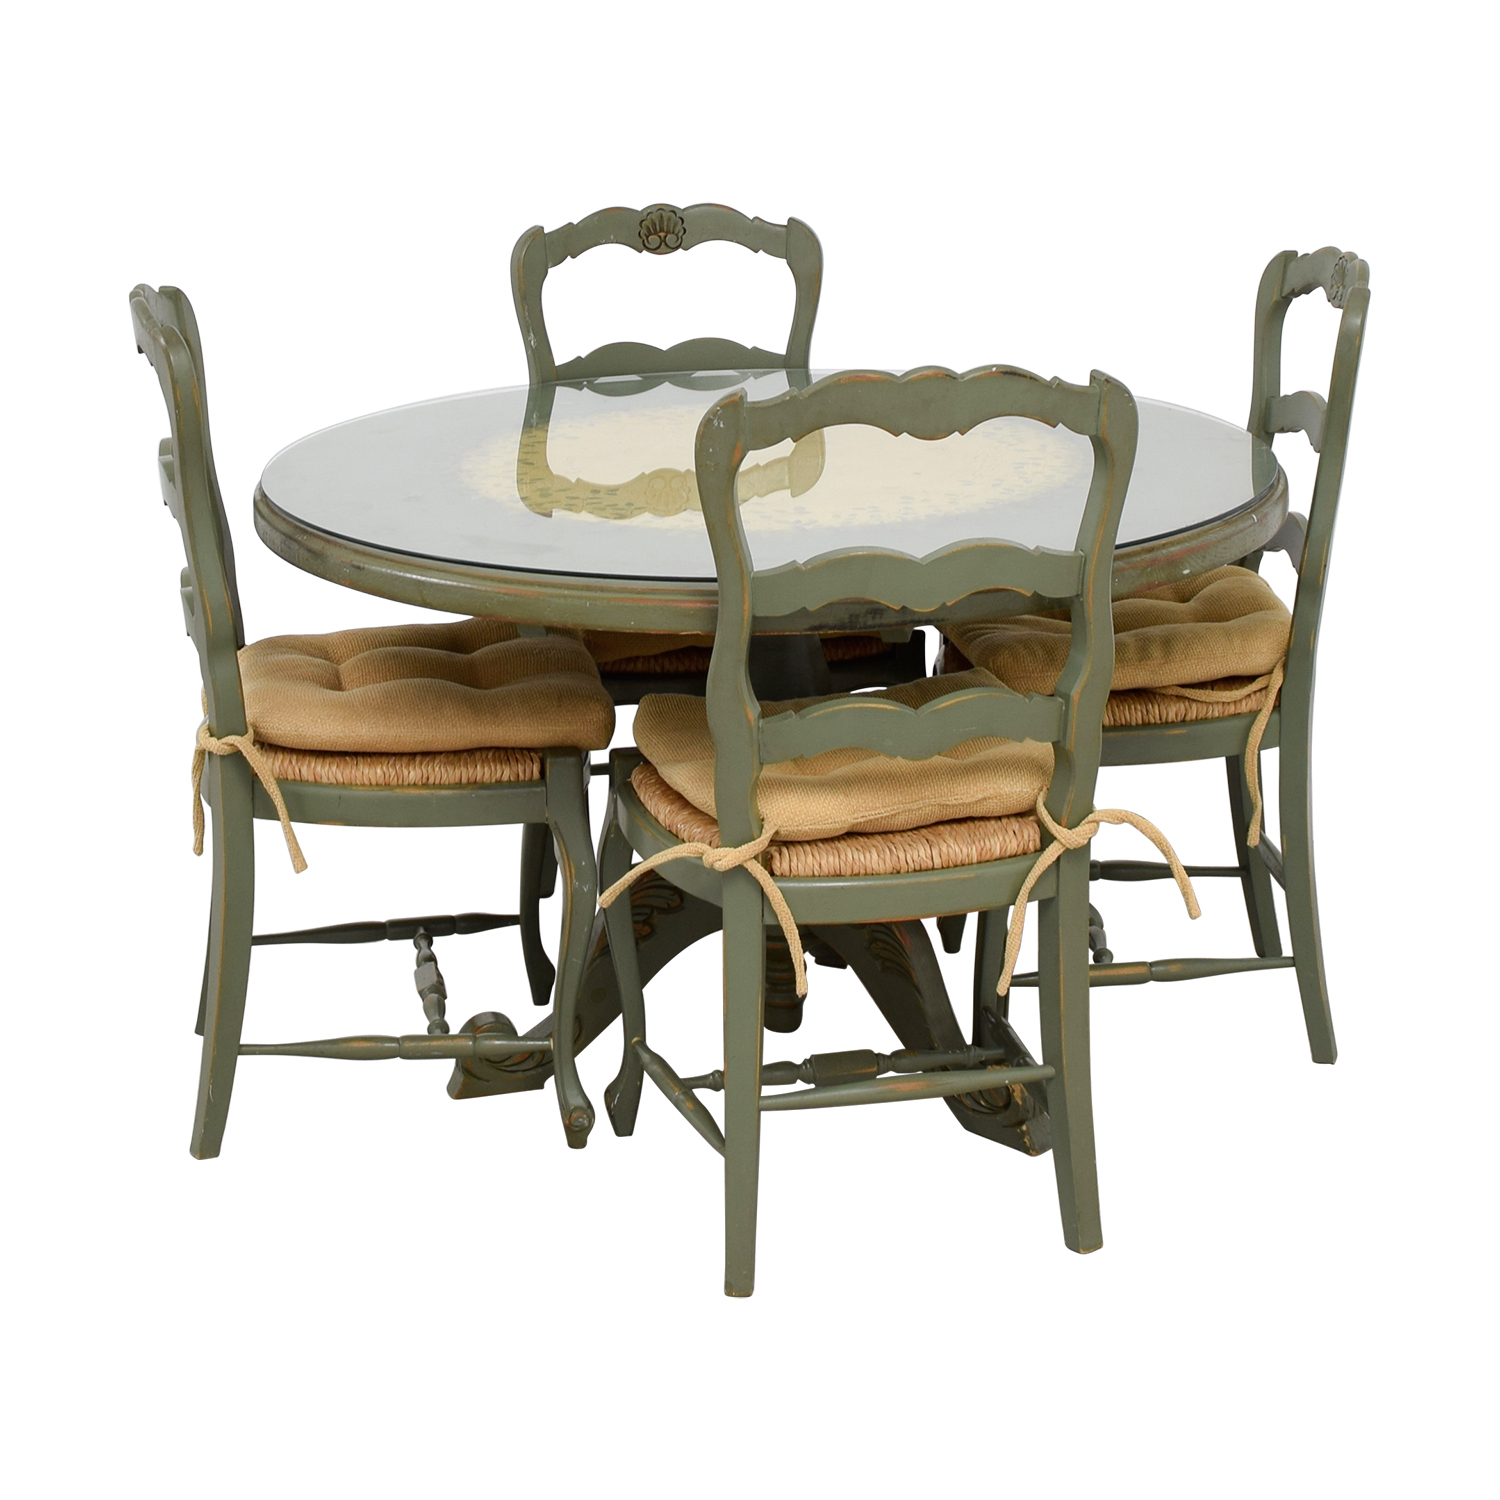 used kitchen chairs how much does it cost to reupholster a chair 88 off hand painted country style table and